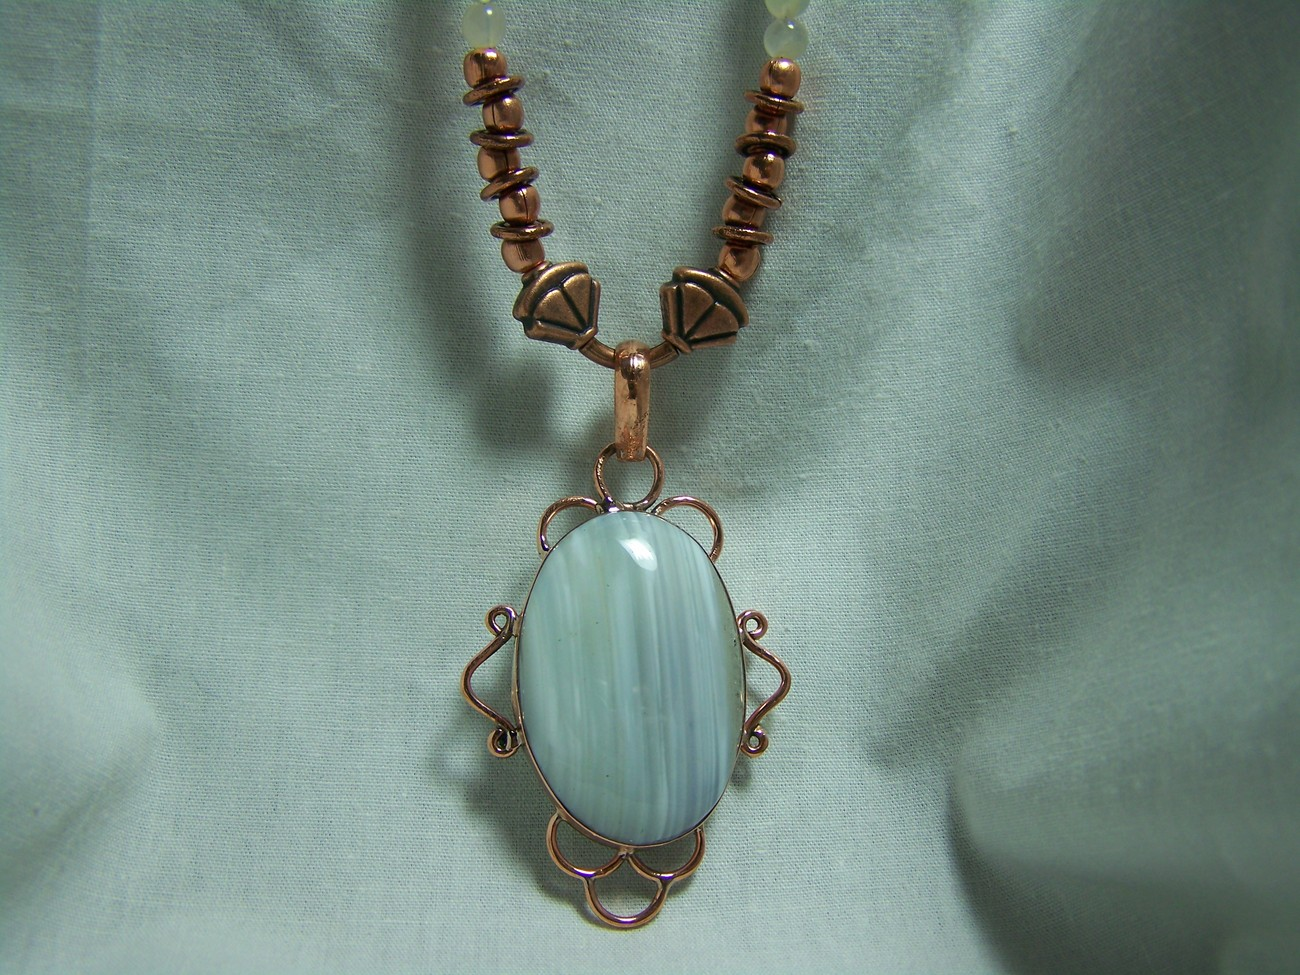 Agate moonstone copper pendant 20inch necklace